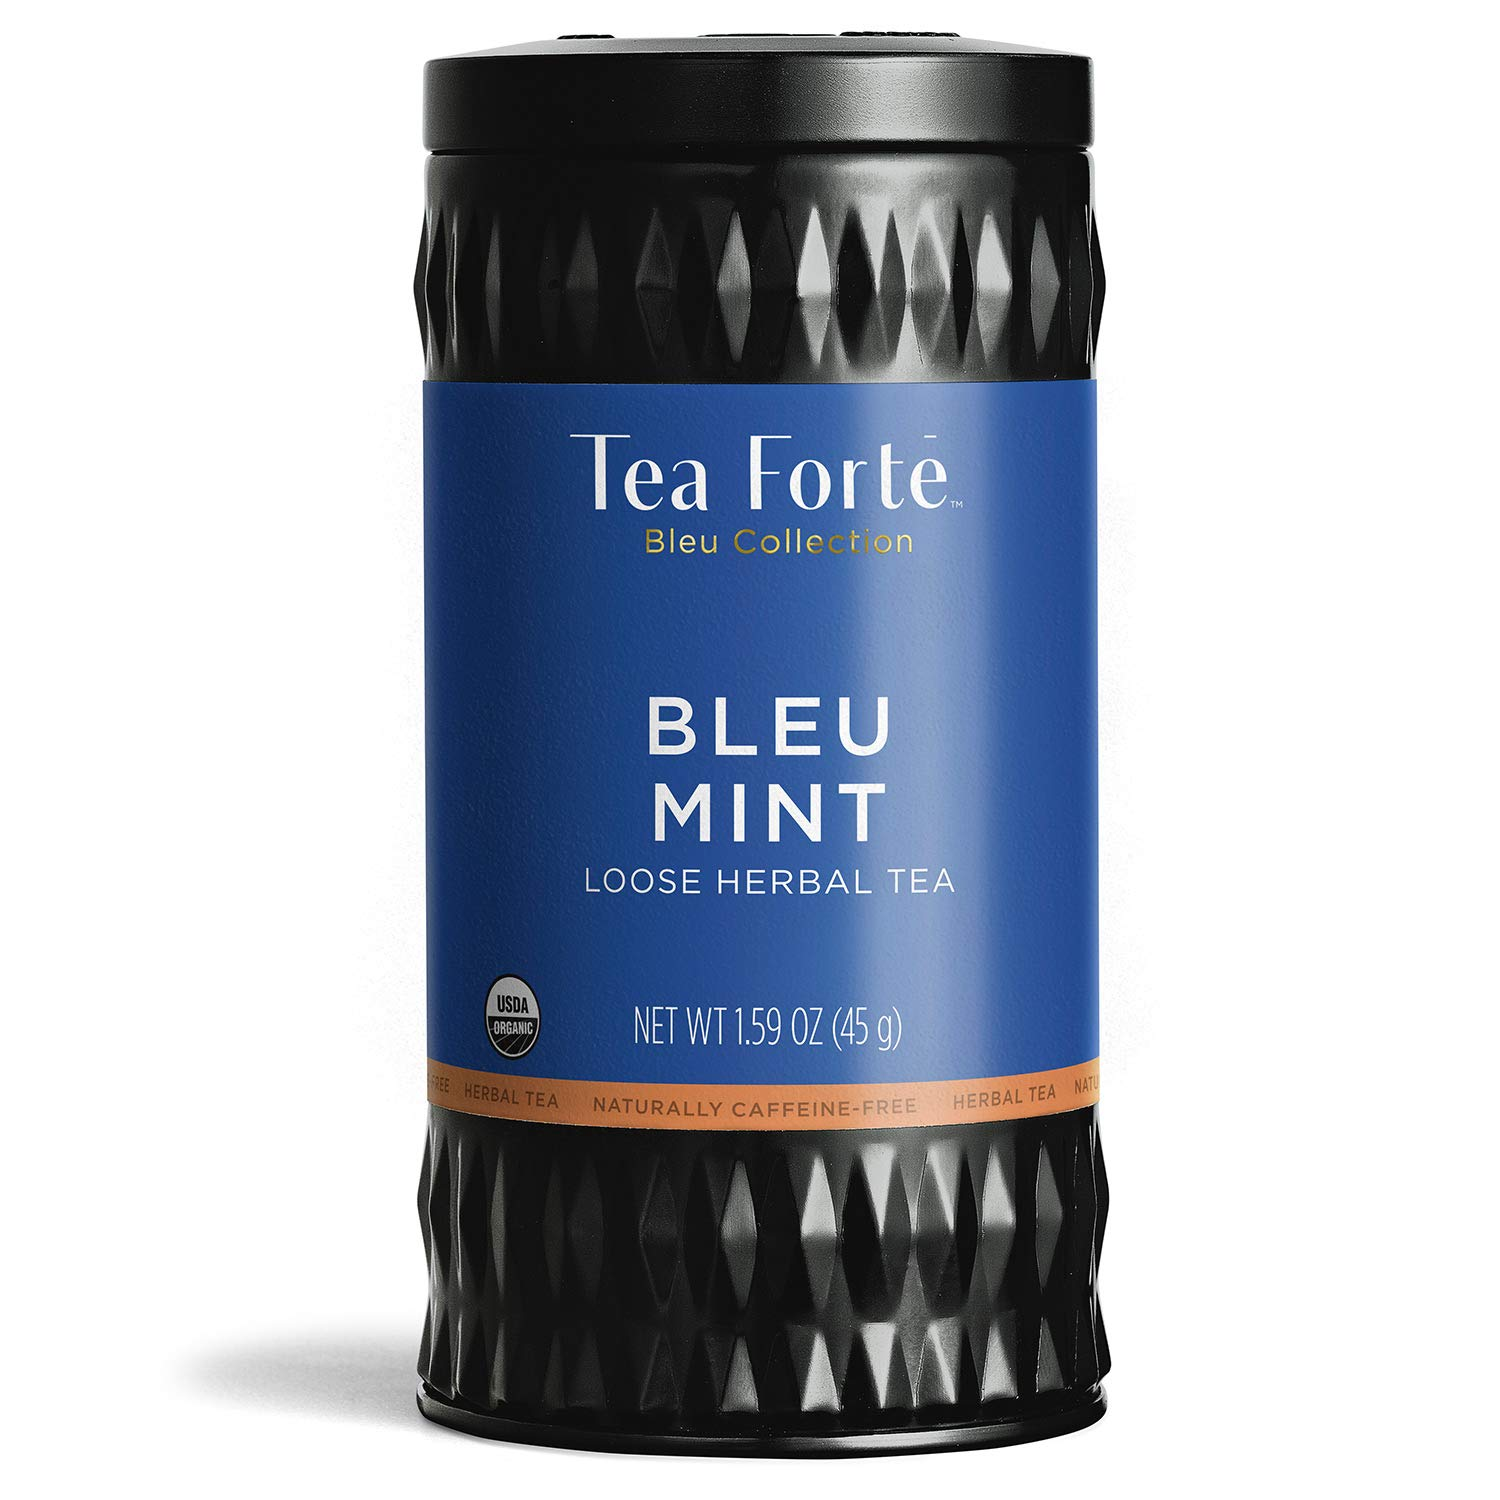 Tea Forté BLEU MINT Butterfly Pea Blue Herbal Tea with Organic Peppermint, Lemon Balm and Licorice Root, Loose Leaf Tea Tin, 1.59 oz Canister